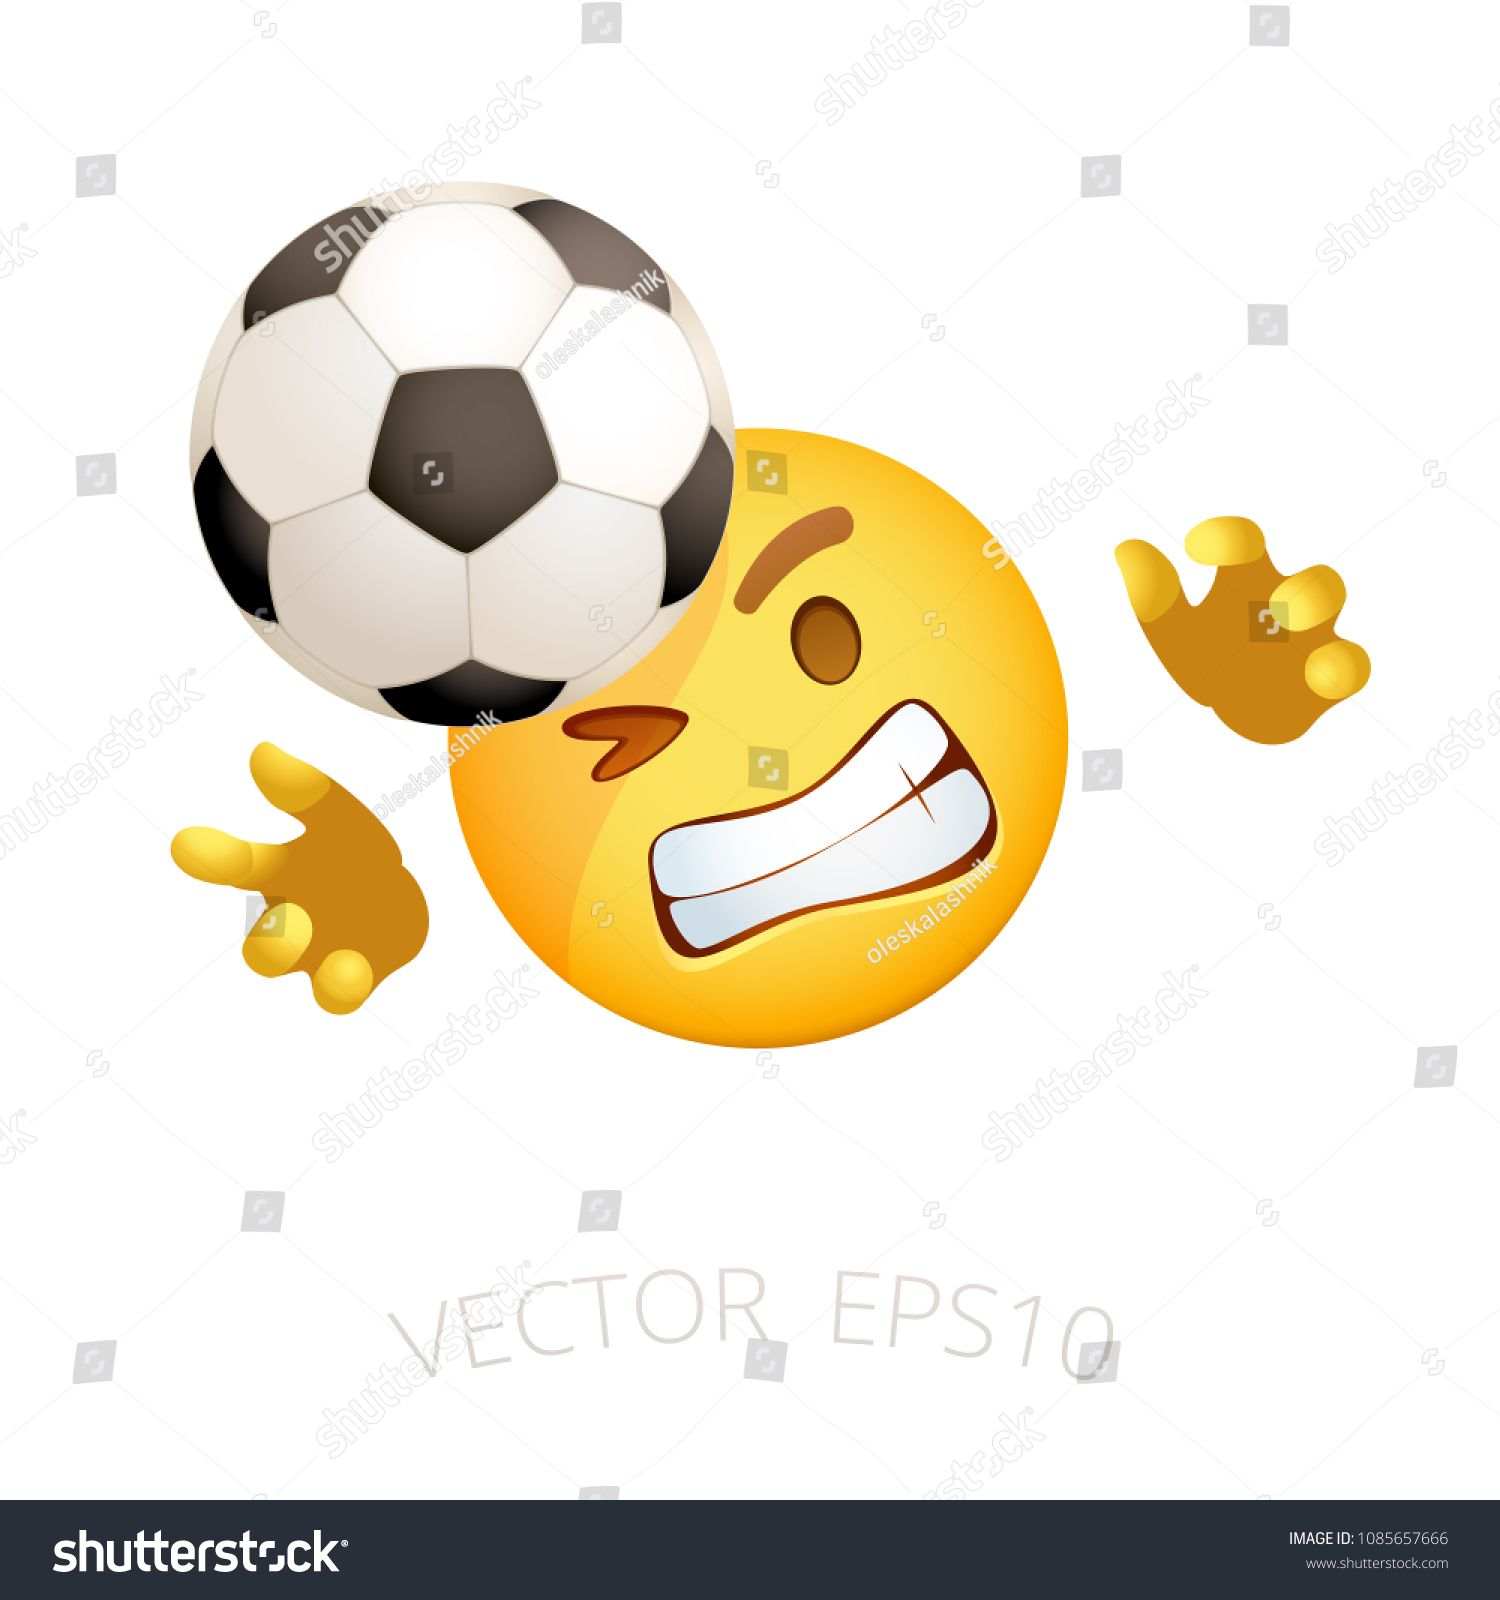 Football Goalie Emoji Vector Smile Goalkeeper Who Tries To Catch The Flying Soccer Ball Yellow Sports Emoticon For Internet Chats Goalkeeper Fly Ball Goalie